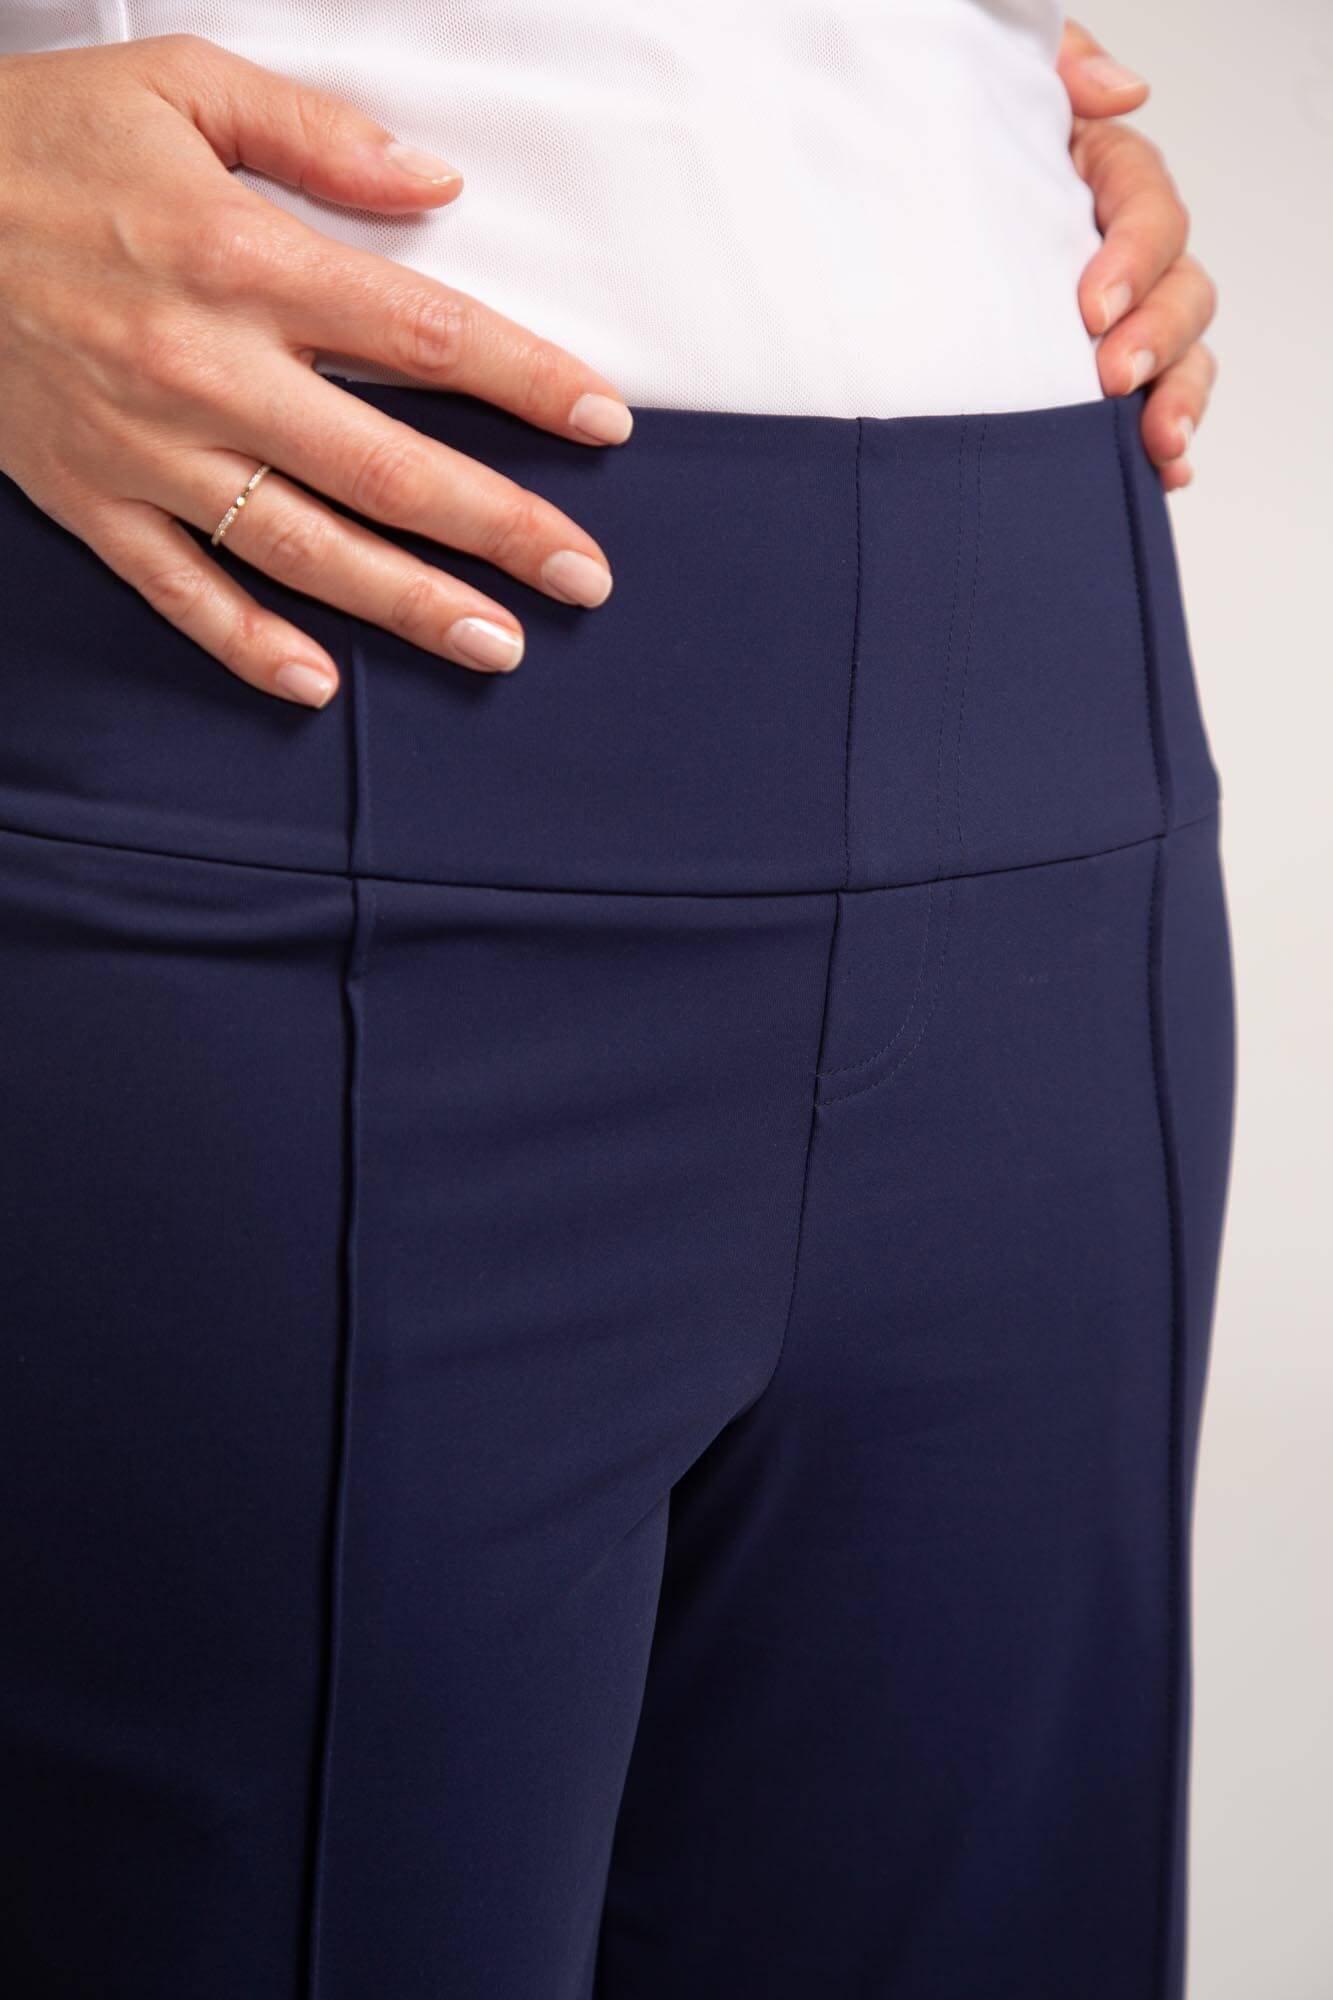 Close up of navy blue Tailored and Trim golf short